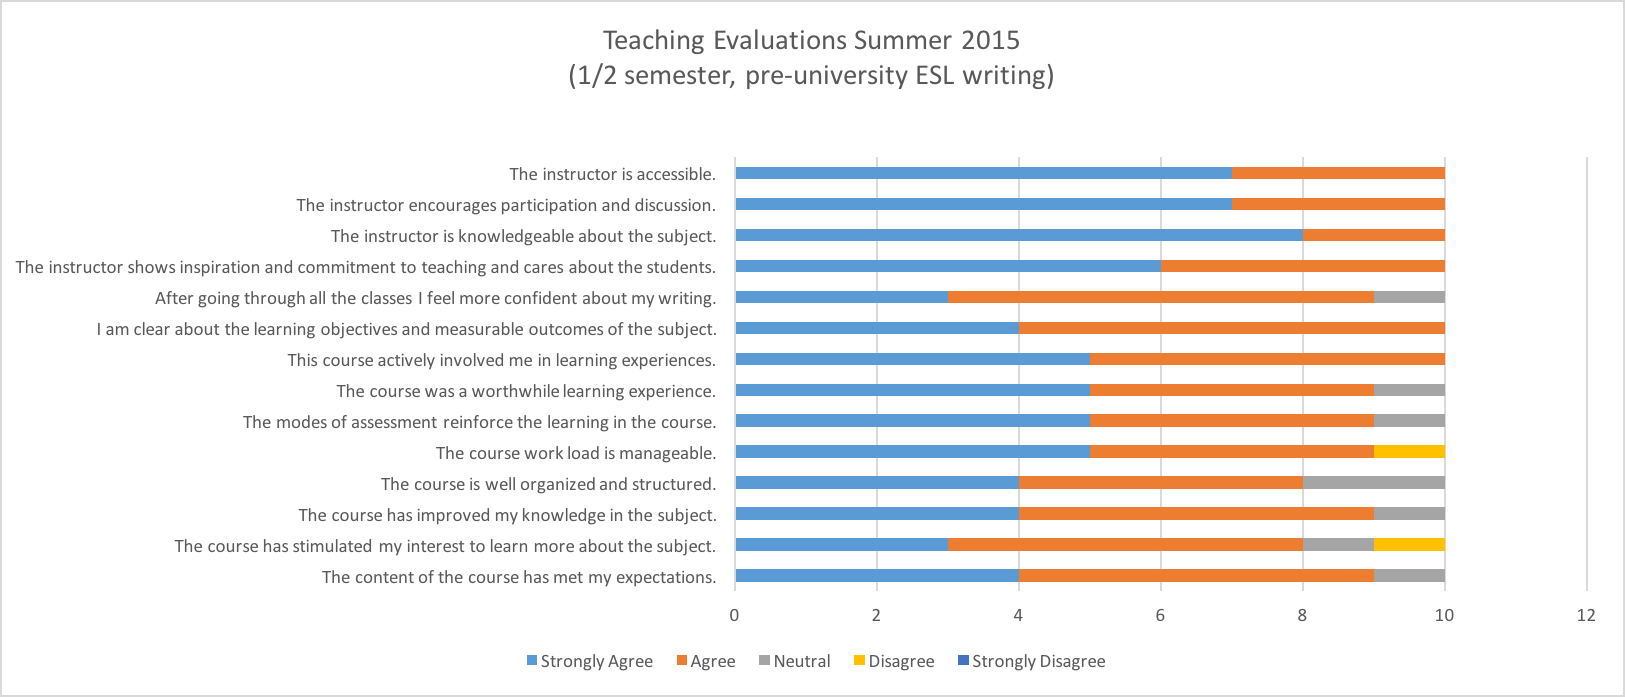 Graph of teaching evaluations summer 2015 pre-university ESL writing